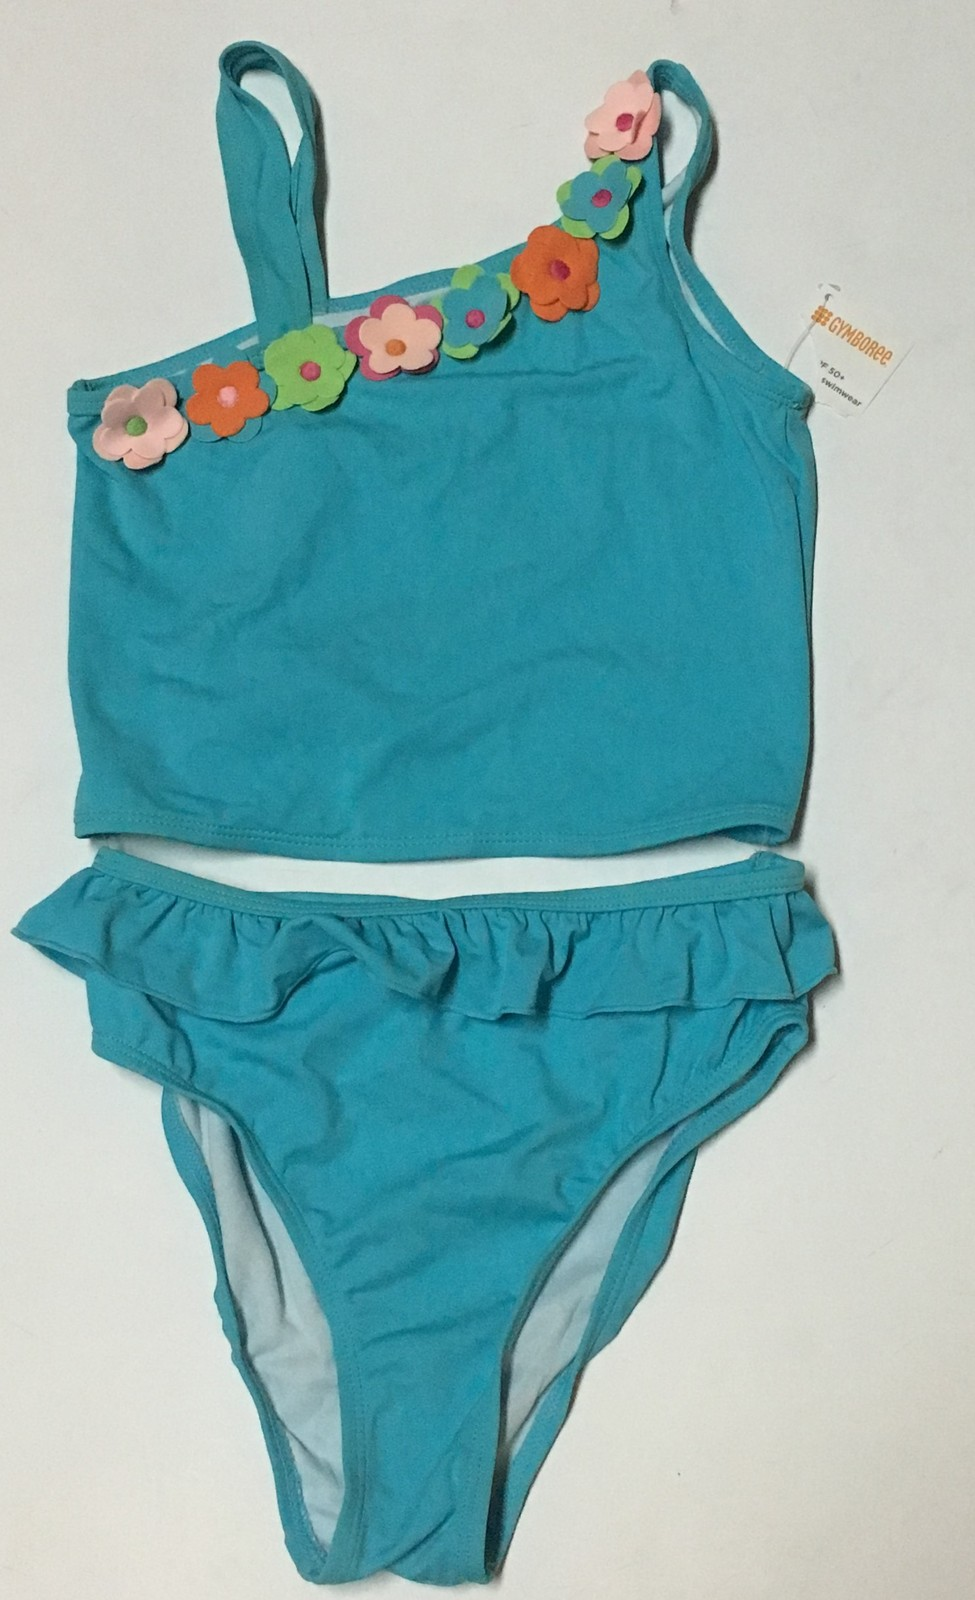 Youth Two Piece Swimwear Swimsuit Sz 12 Blue Floral SPF 50+ image 2